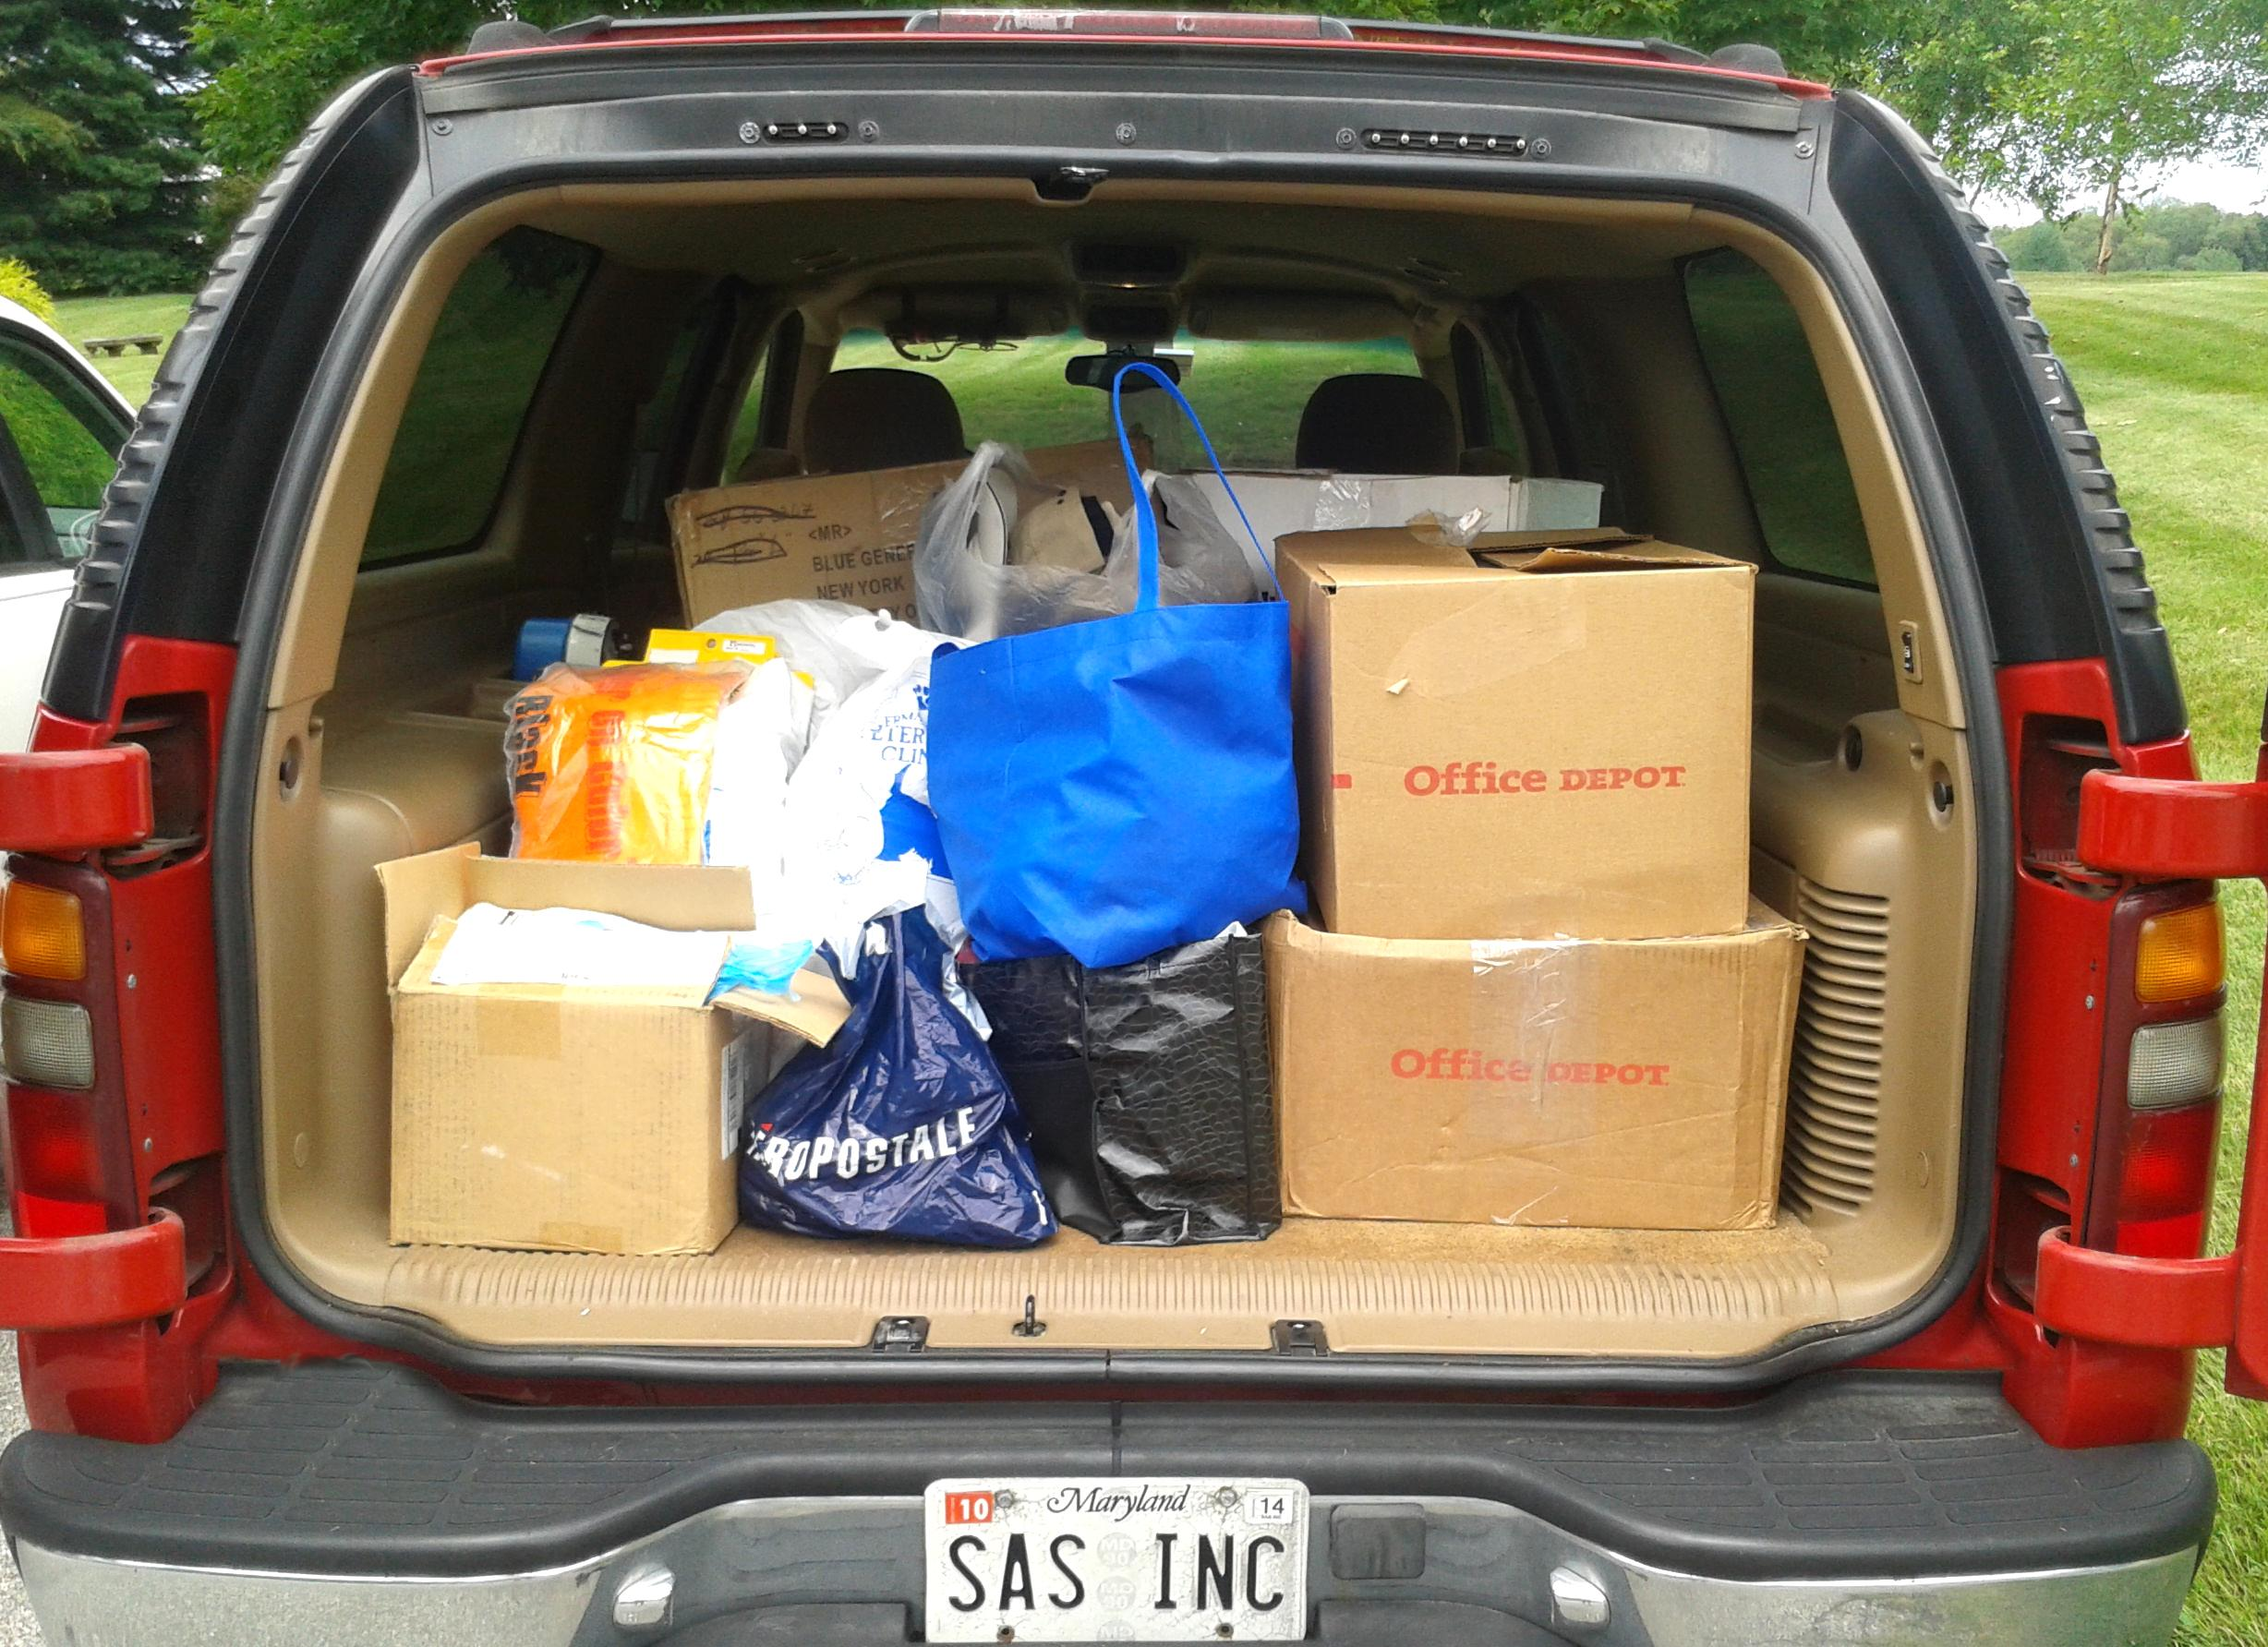 Printing Invoice Sas Promotions  Promotional Products  Apparel Merch Corporate  Free Receipts Templates Excel with Star Receipt Printer Paper Here Is A Small Sampling Of What They Allowed Us To Haul Away For The  Donation Project  Sample Invoices With Payment Terms